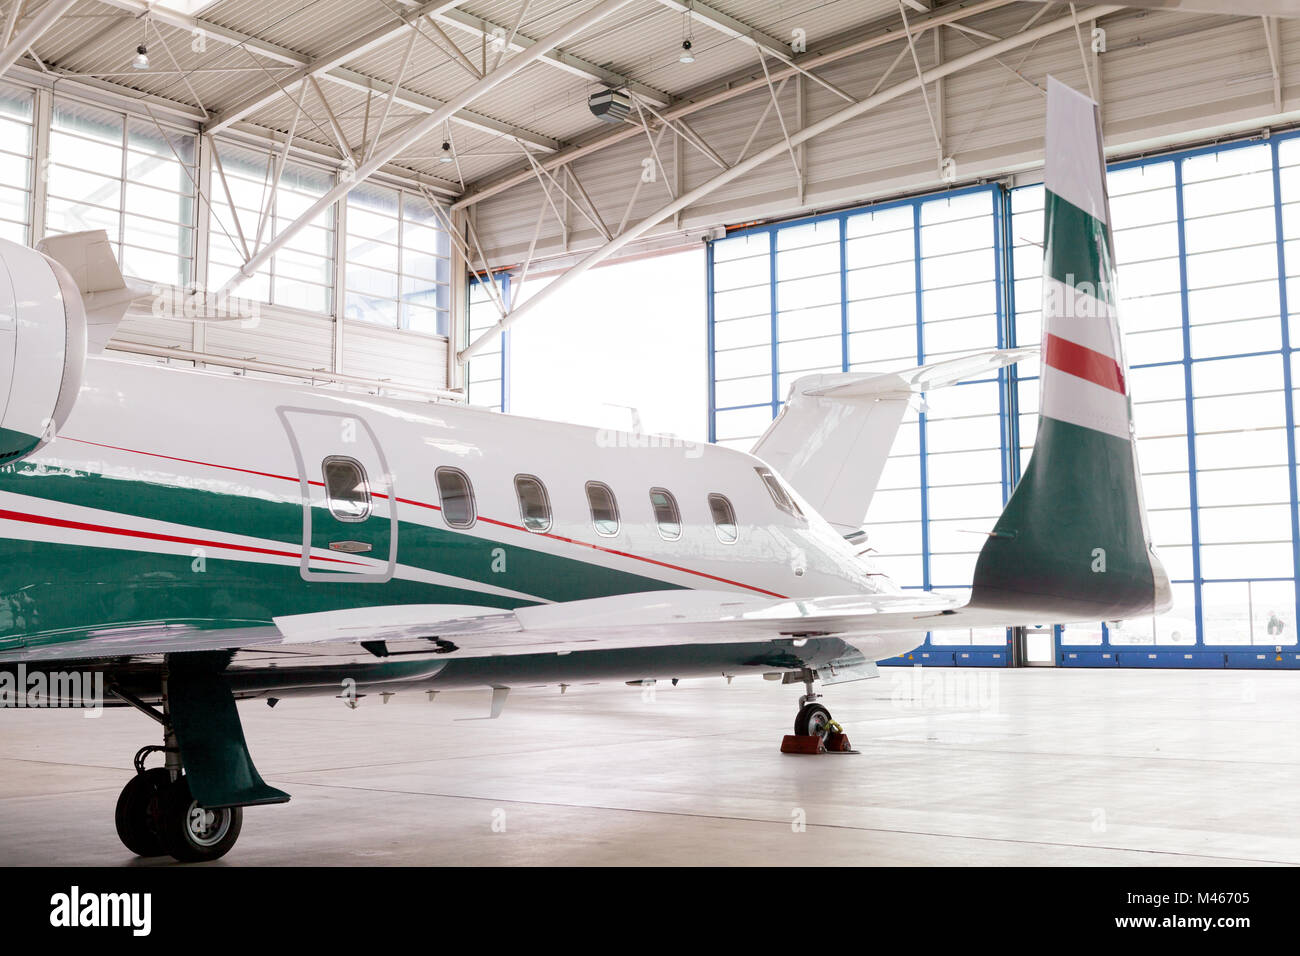 Small Passenger Jet Stock Photos Amp Small Passenger Jet Stock Images Alamy